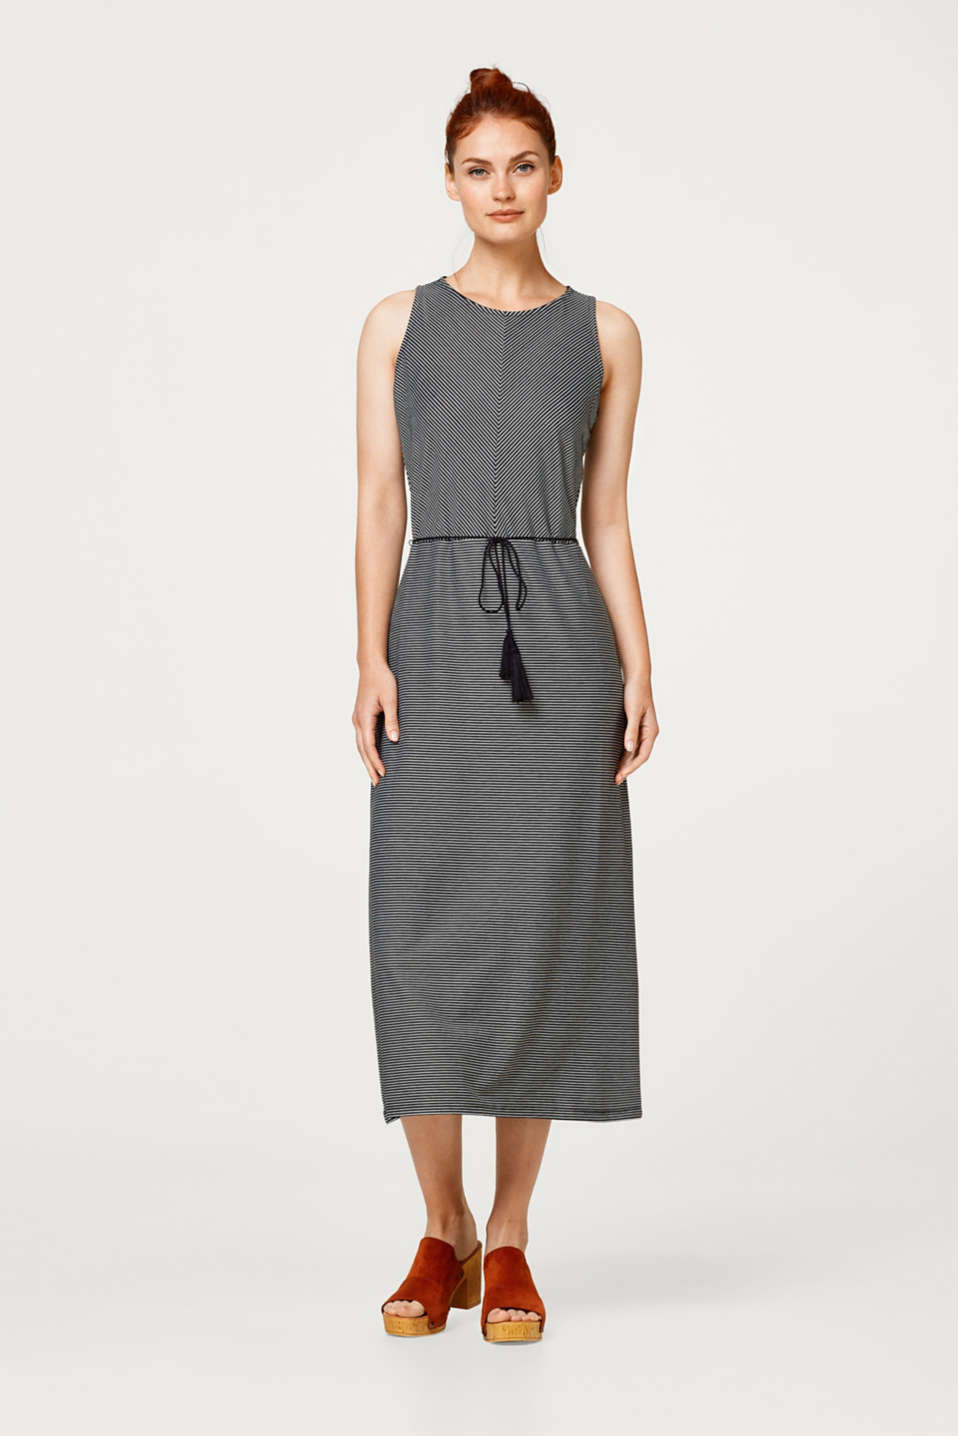 Esprit - Midi dress in stretch jersey